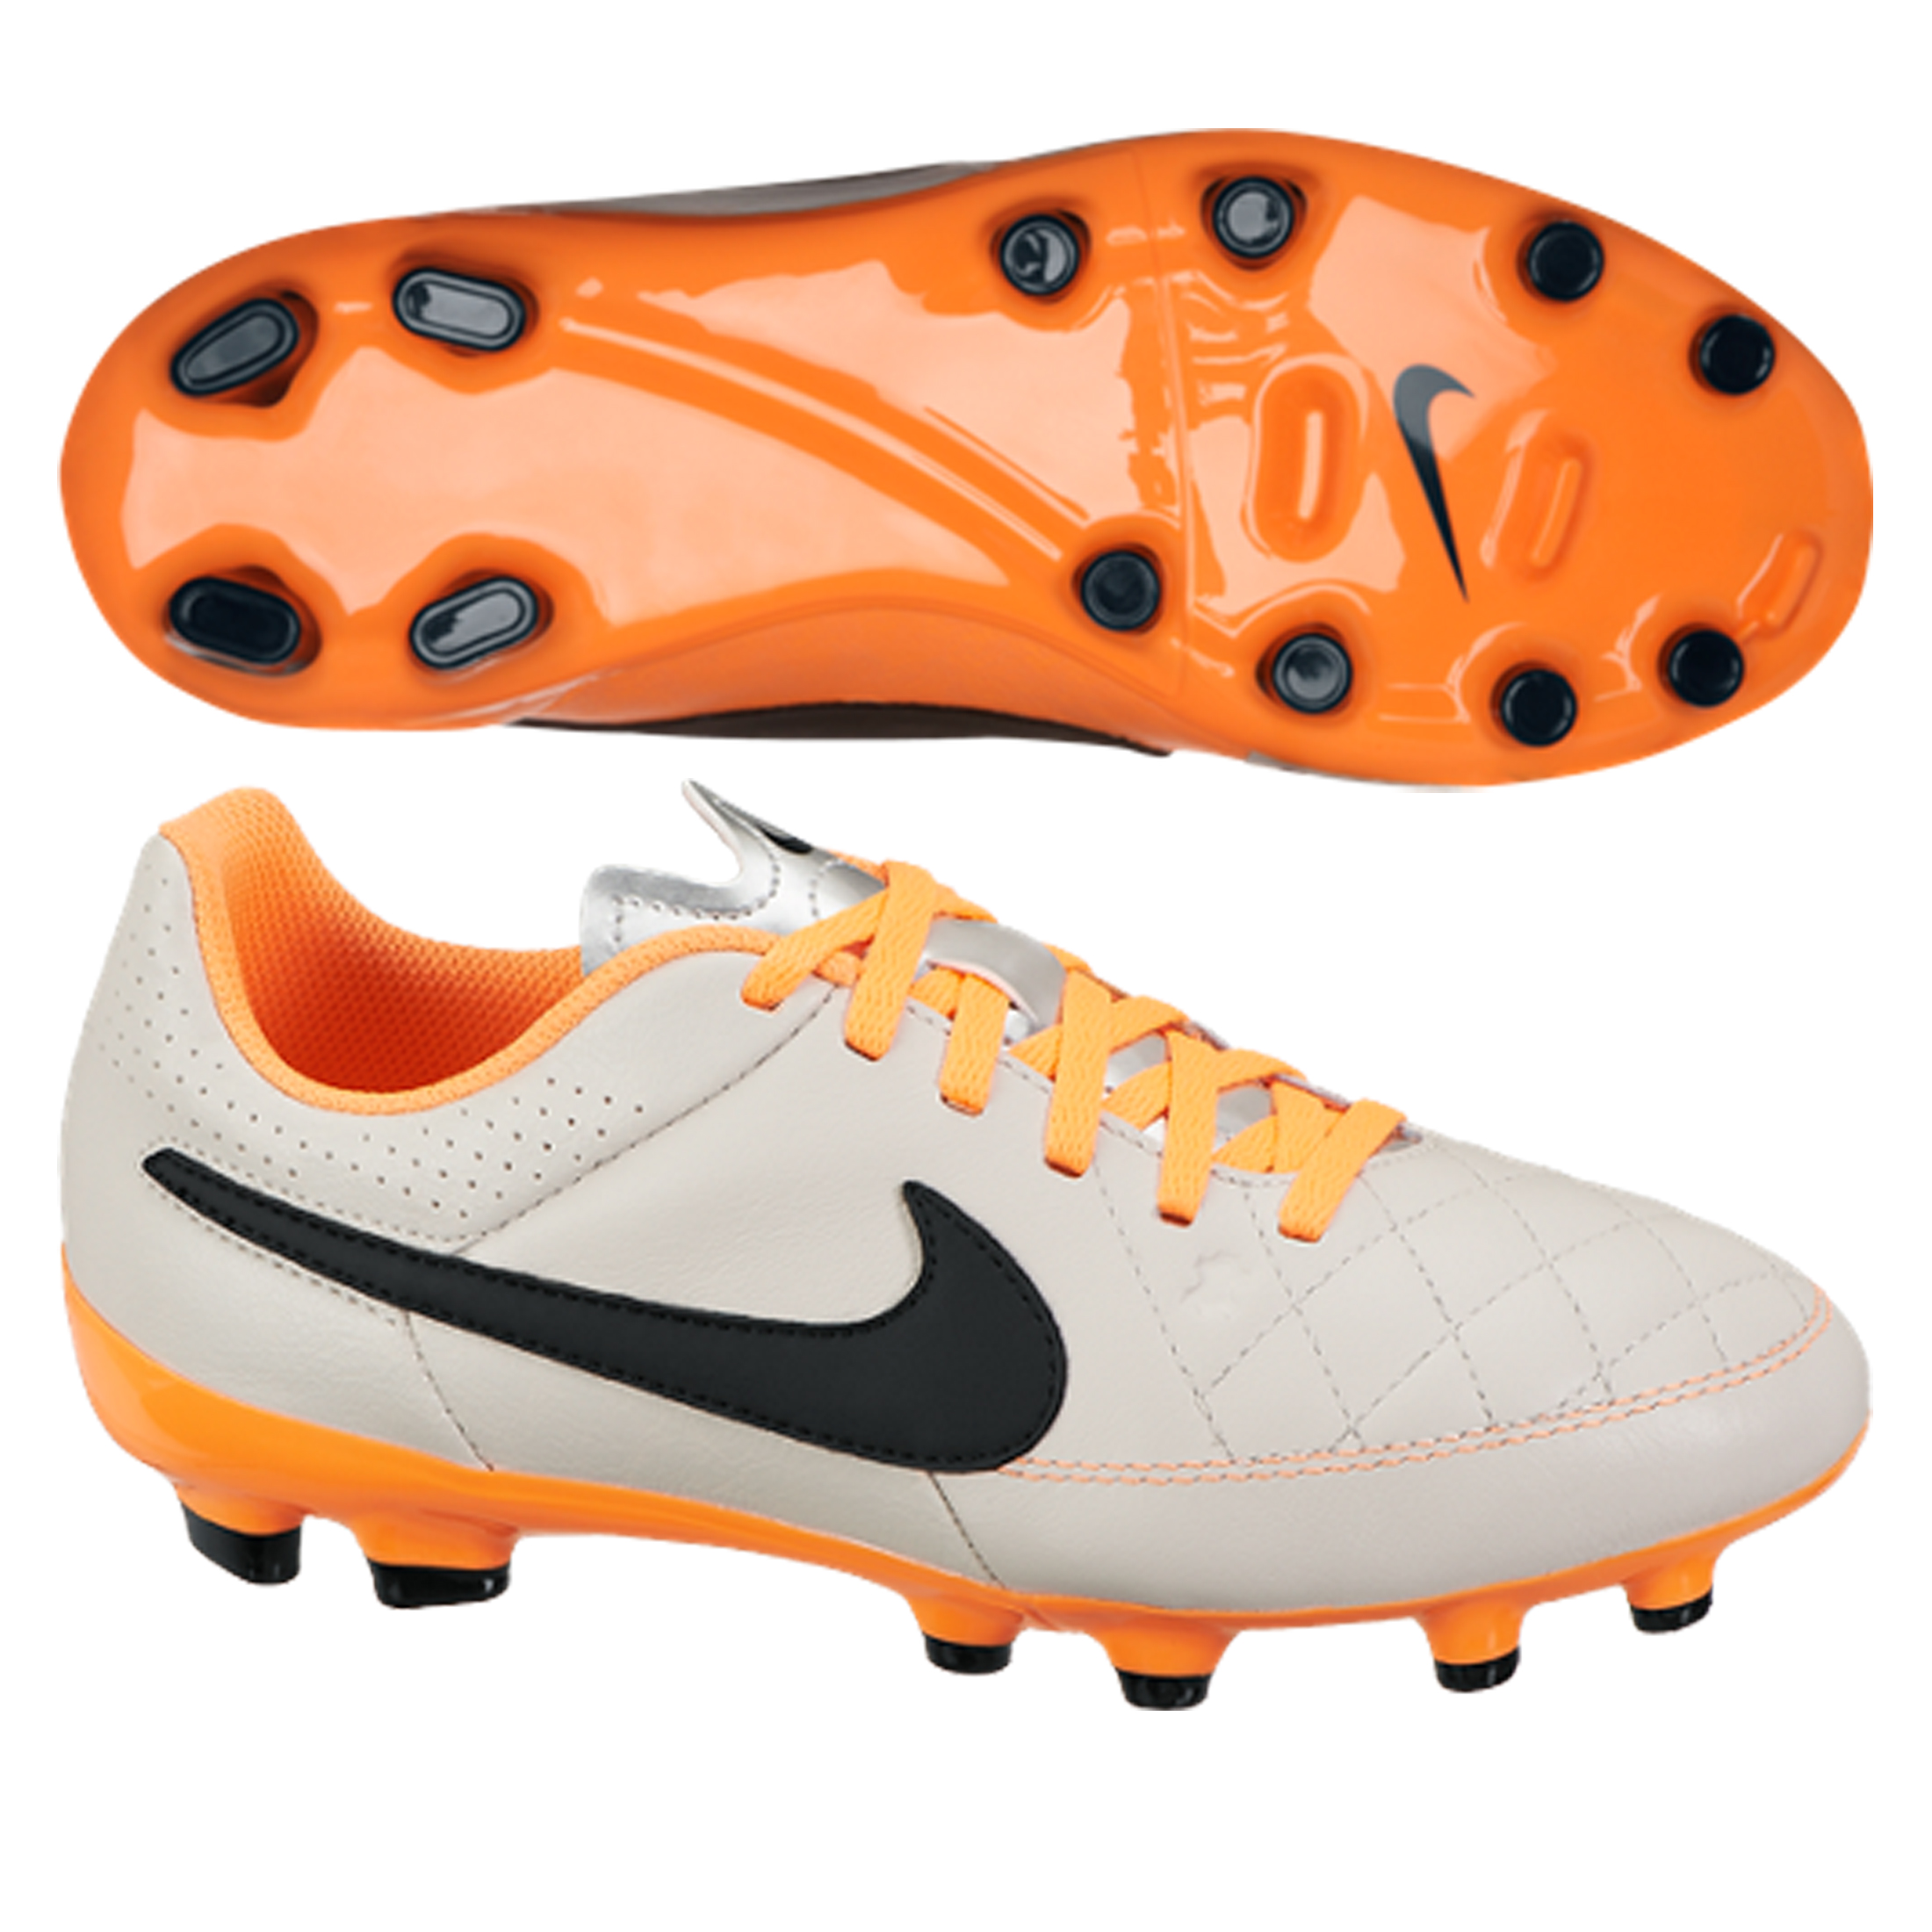 Nike Tiempo Genio Firm Ground Football Boots - Kids Beige